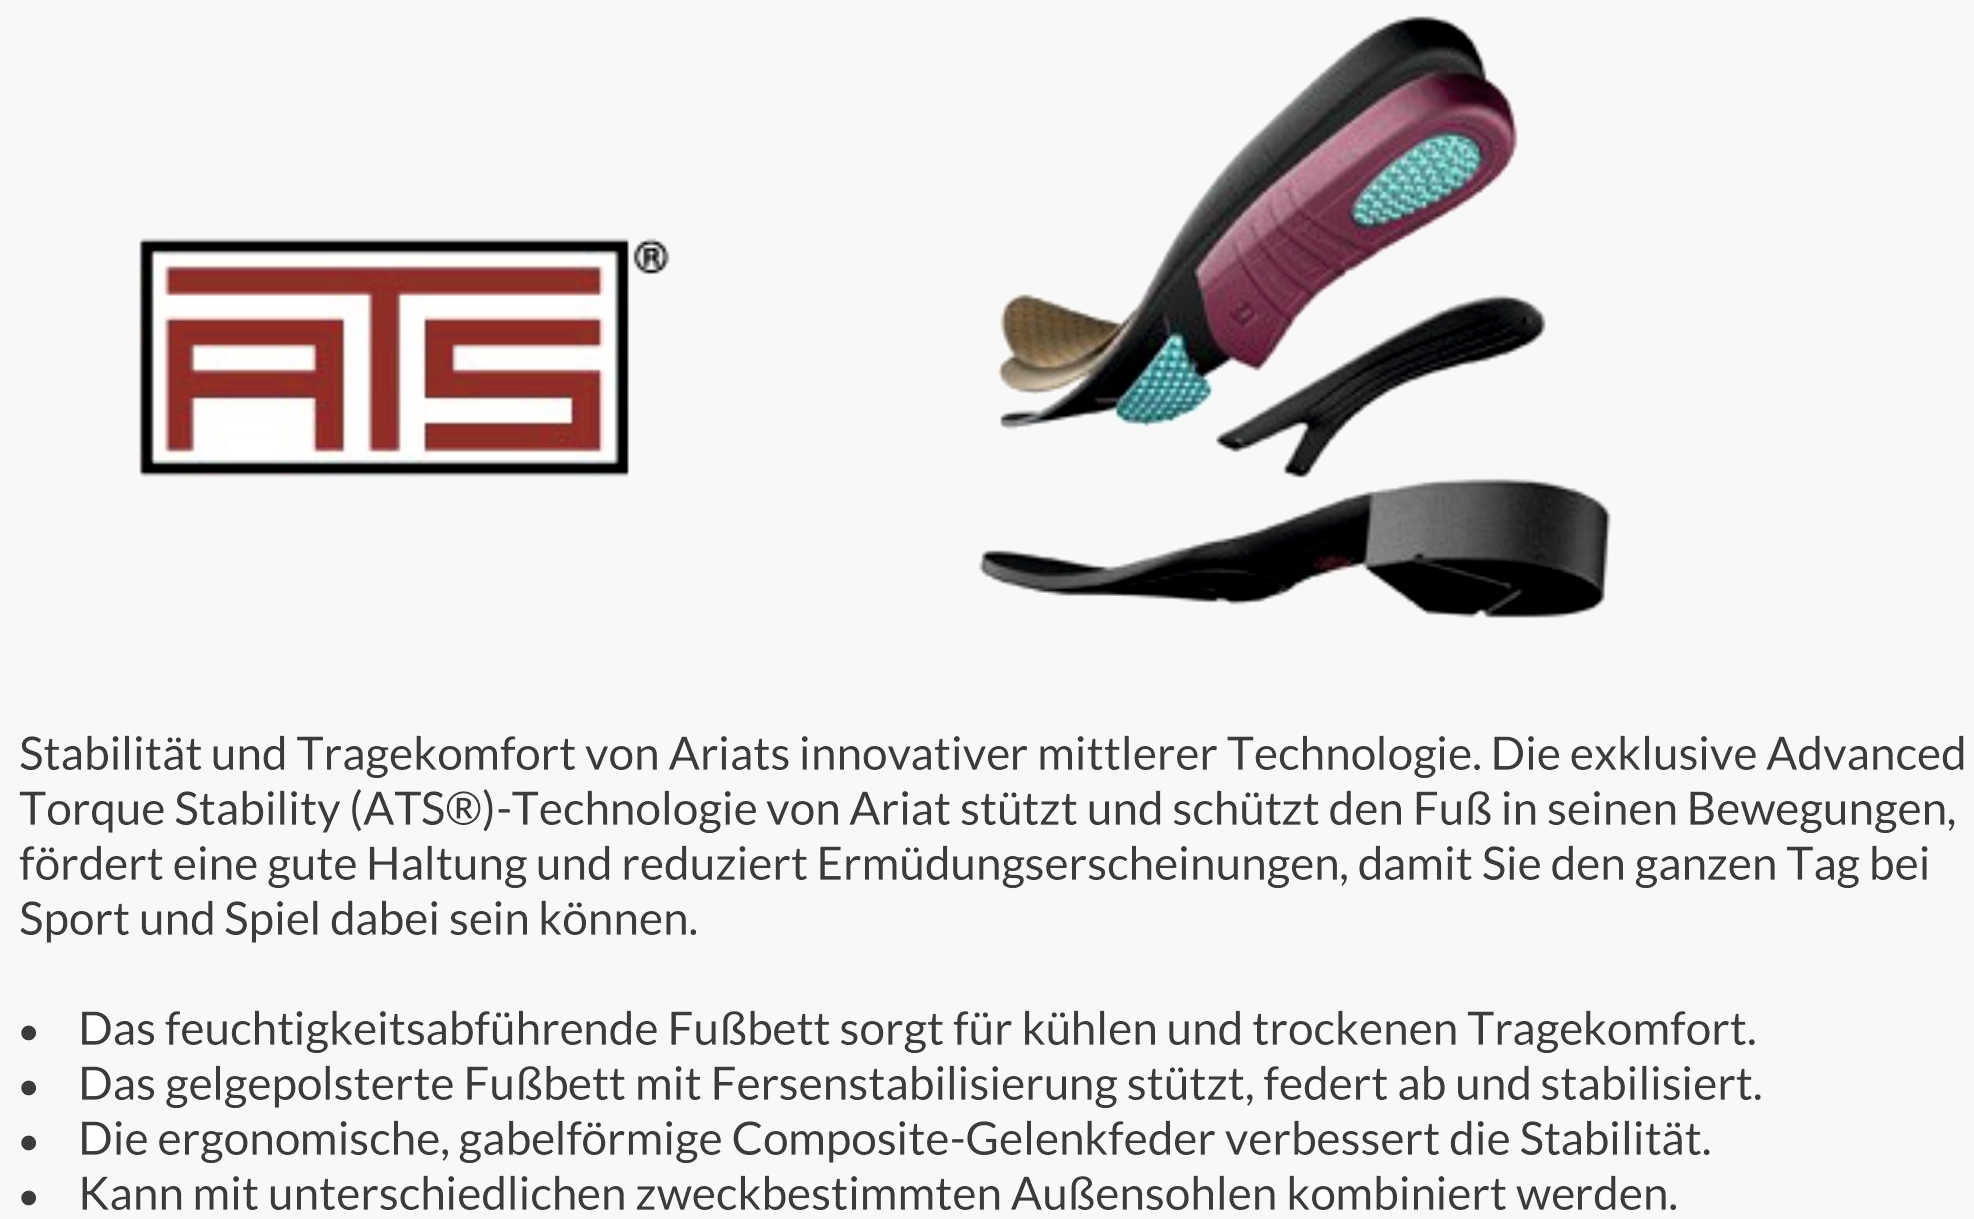 Ariat ATS Technologie